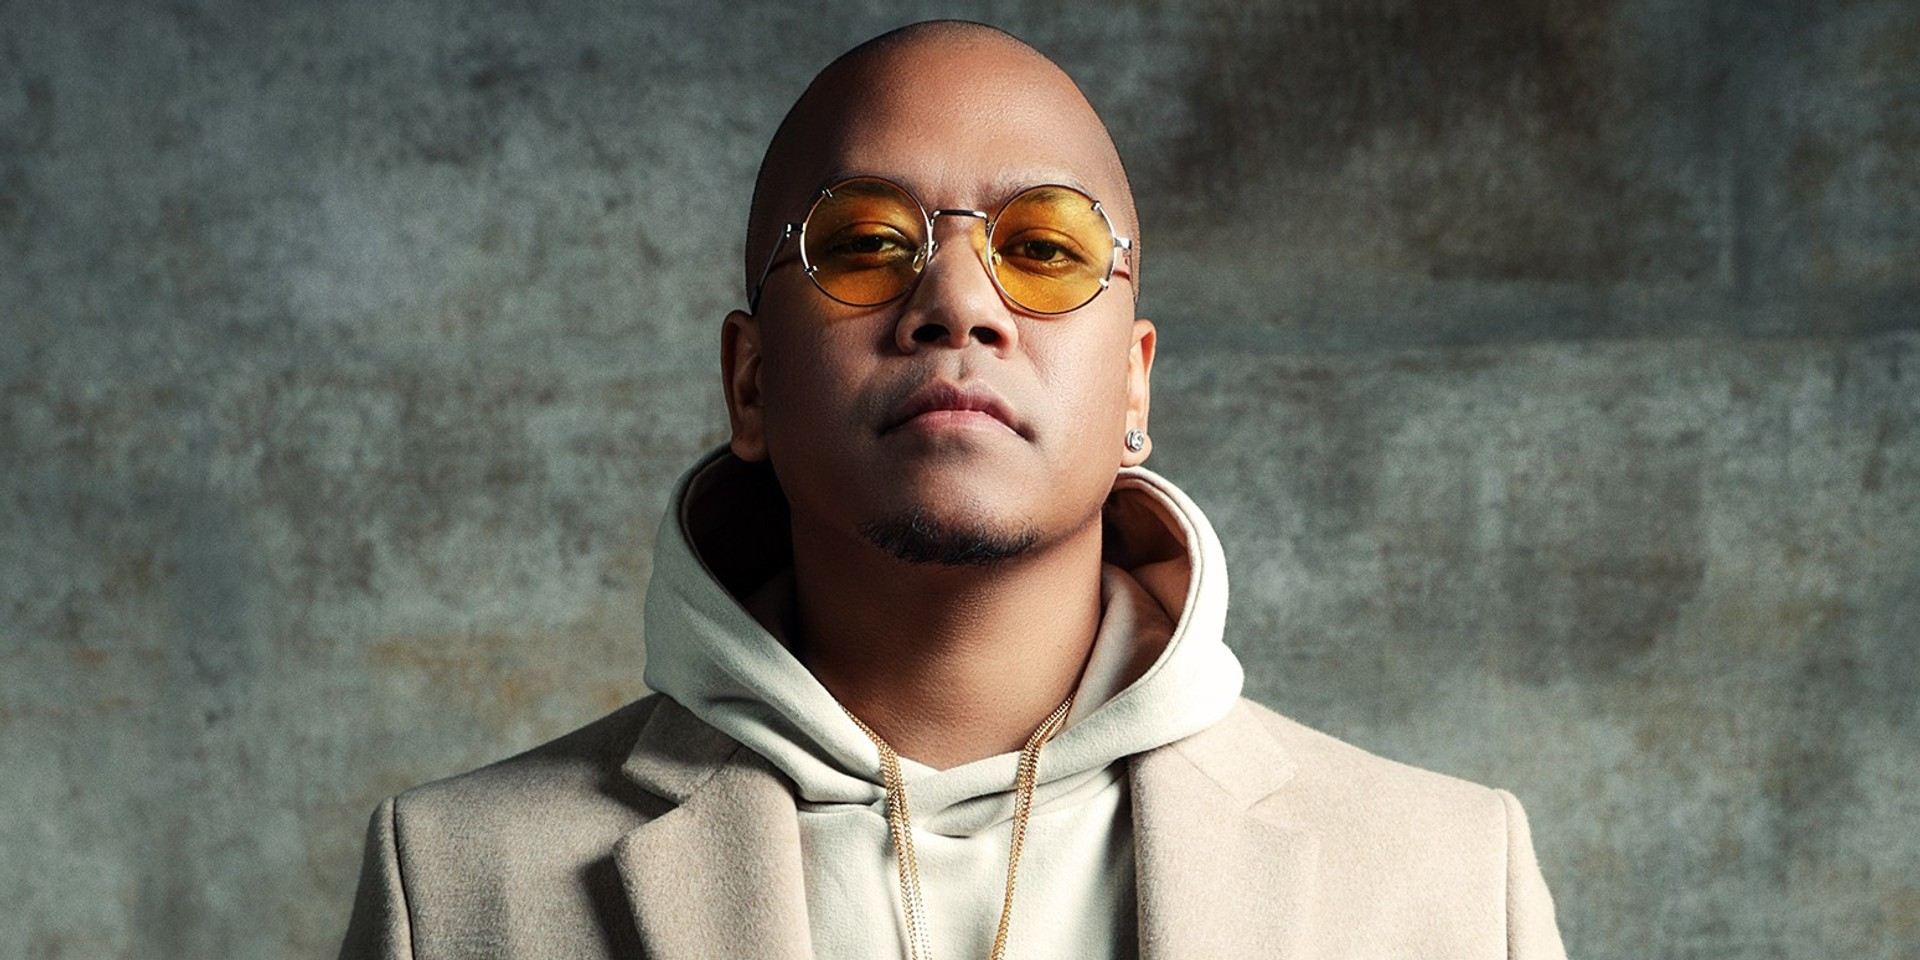 Chuckie to play Bar Rouge on F1 weekend